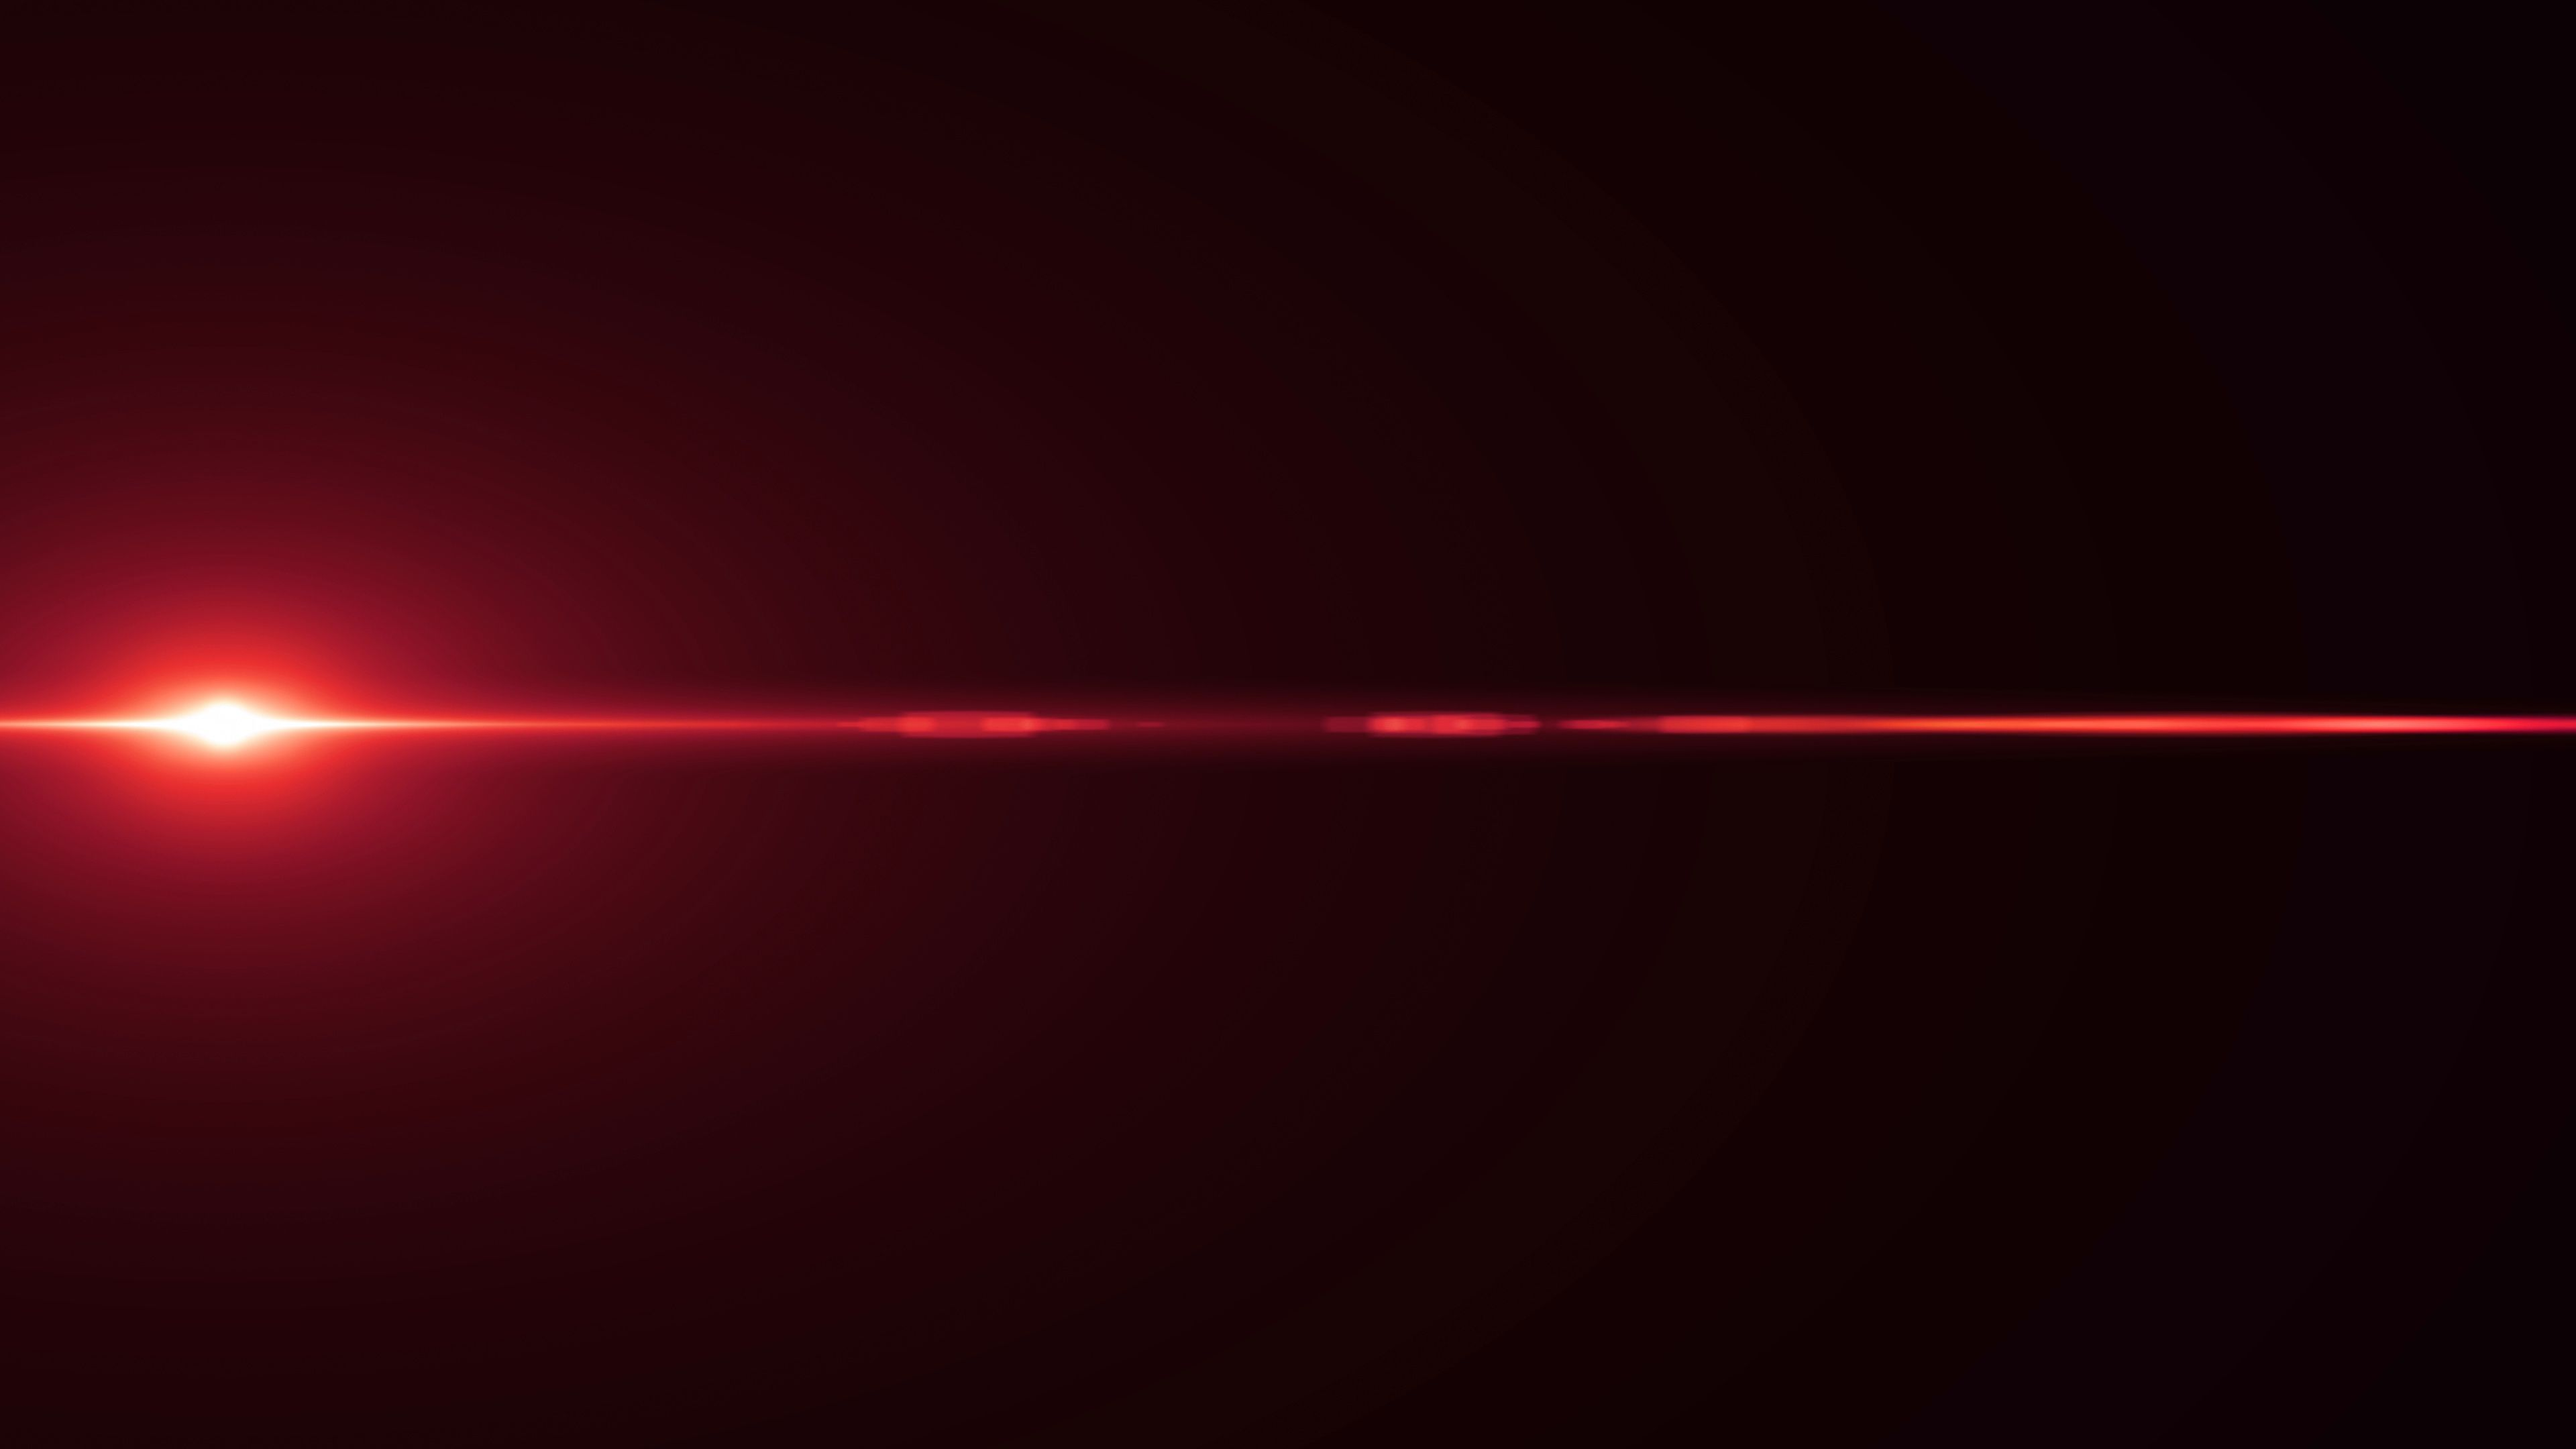 Horizontal Laser Red Sun Moving Lights Optical Lens Flares Overlay Shiny Stock Footage Sun Moving Lights Horizontal Red Sun Lens Flare Optical Lens